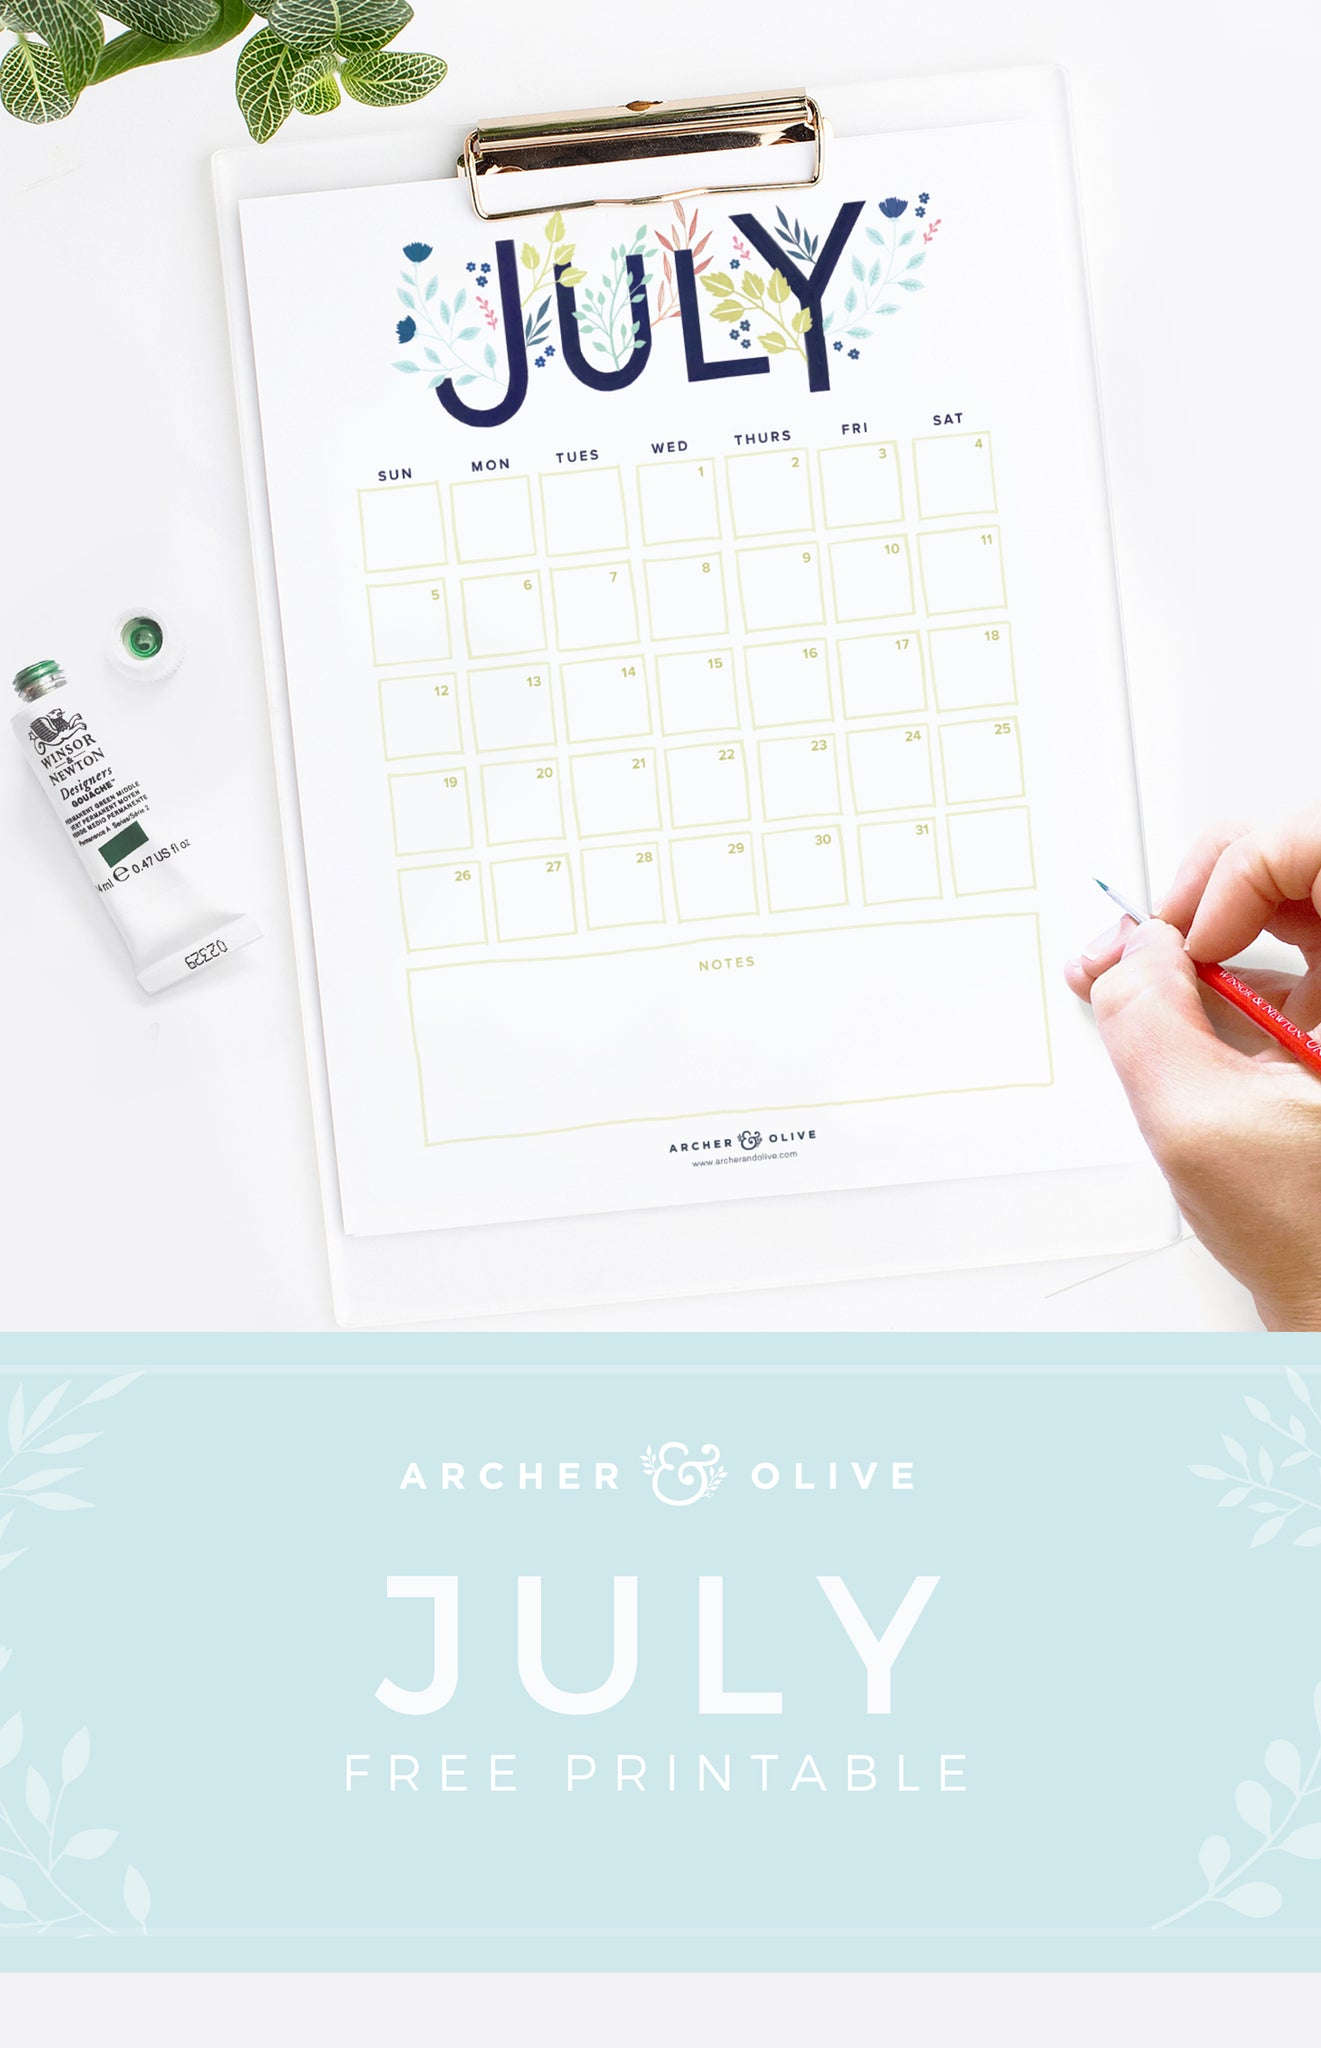 Archer and Olive July Calendar Free Printable